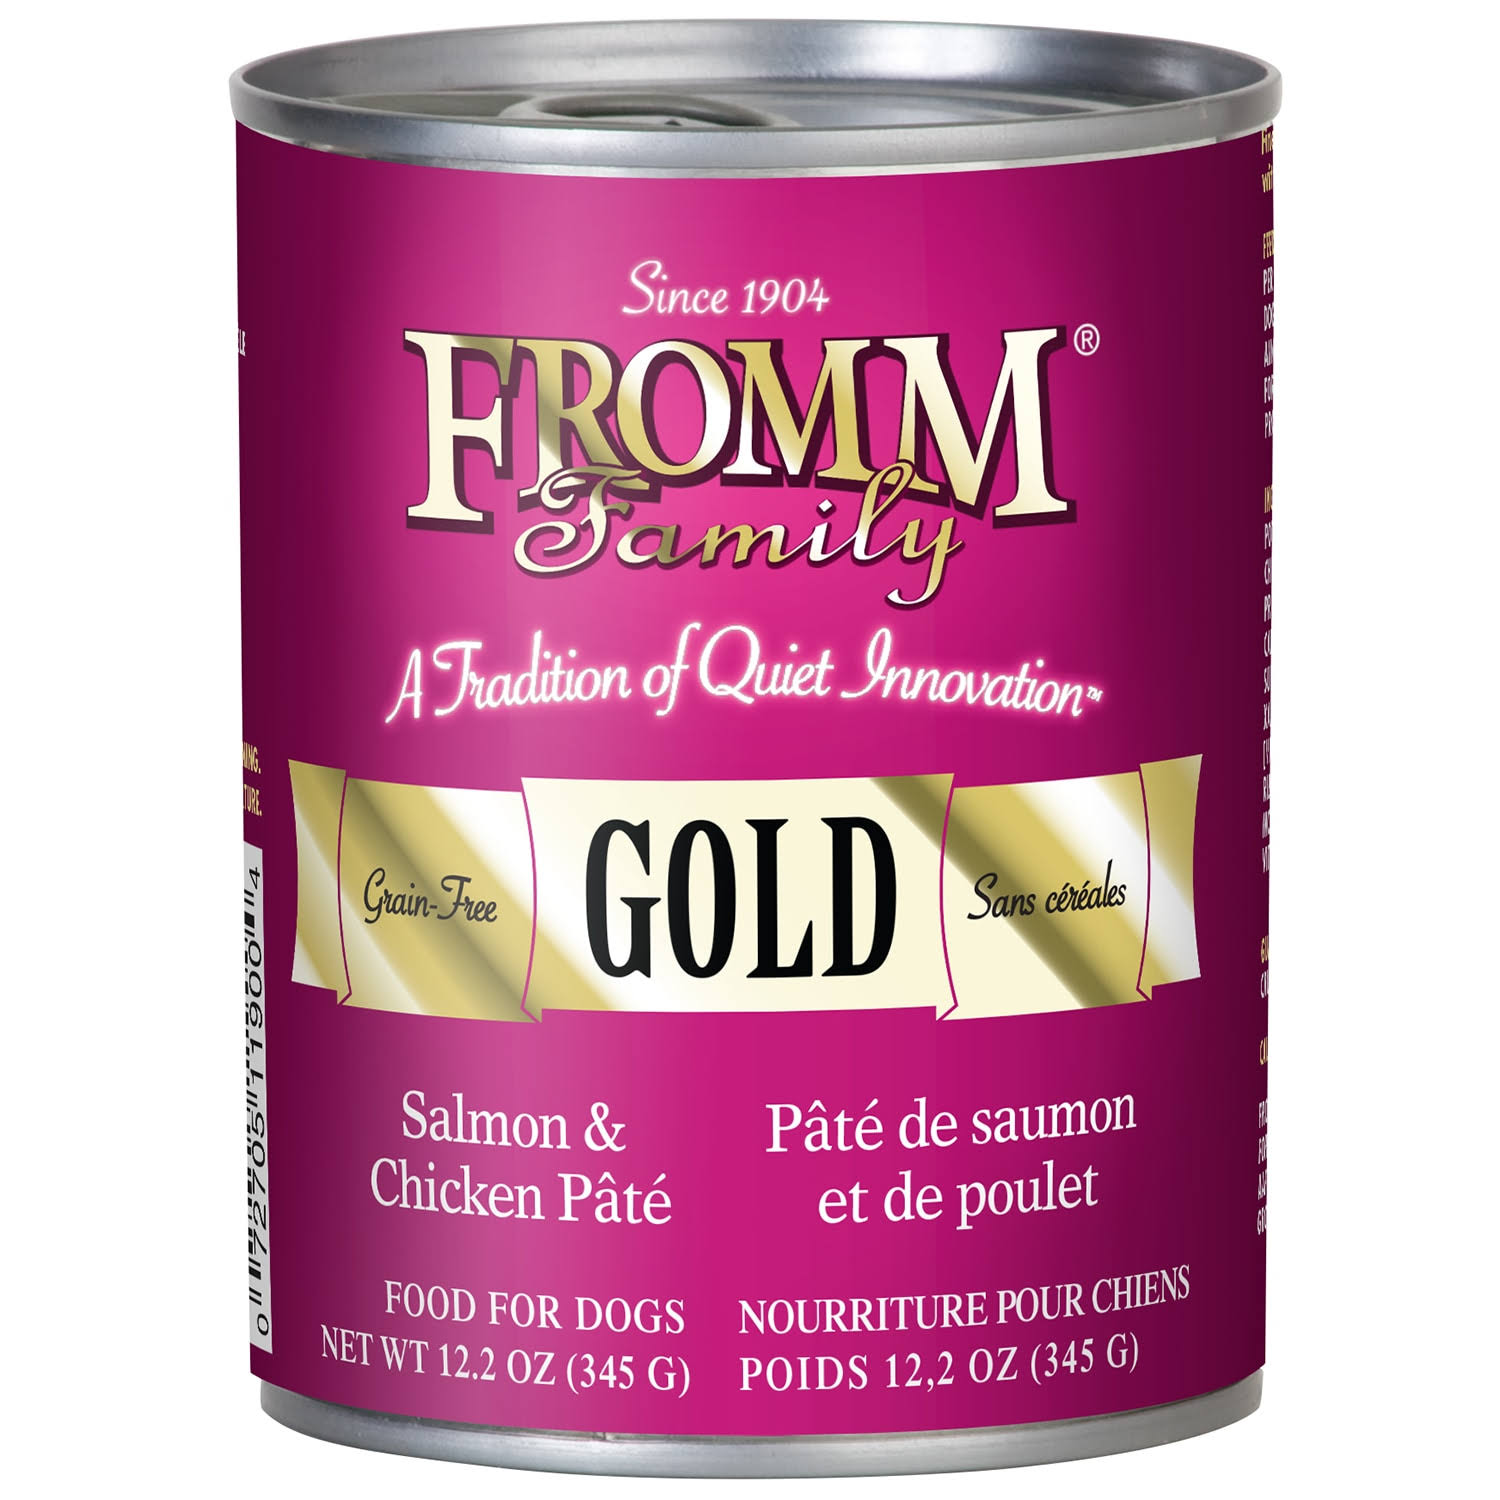 Fromm Gold Salmon & Chicken Pate Canned Dog Food 12.2 oz